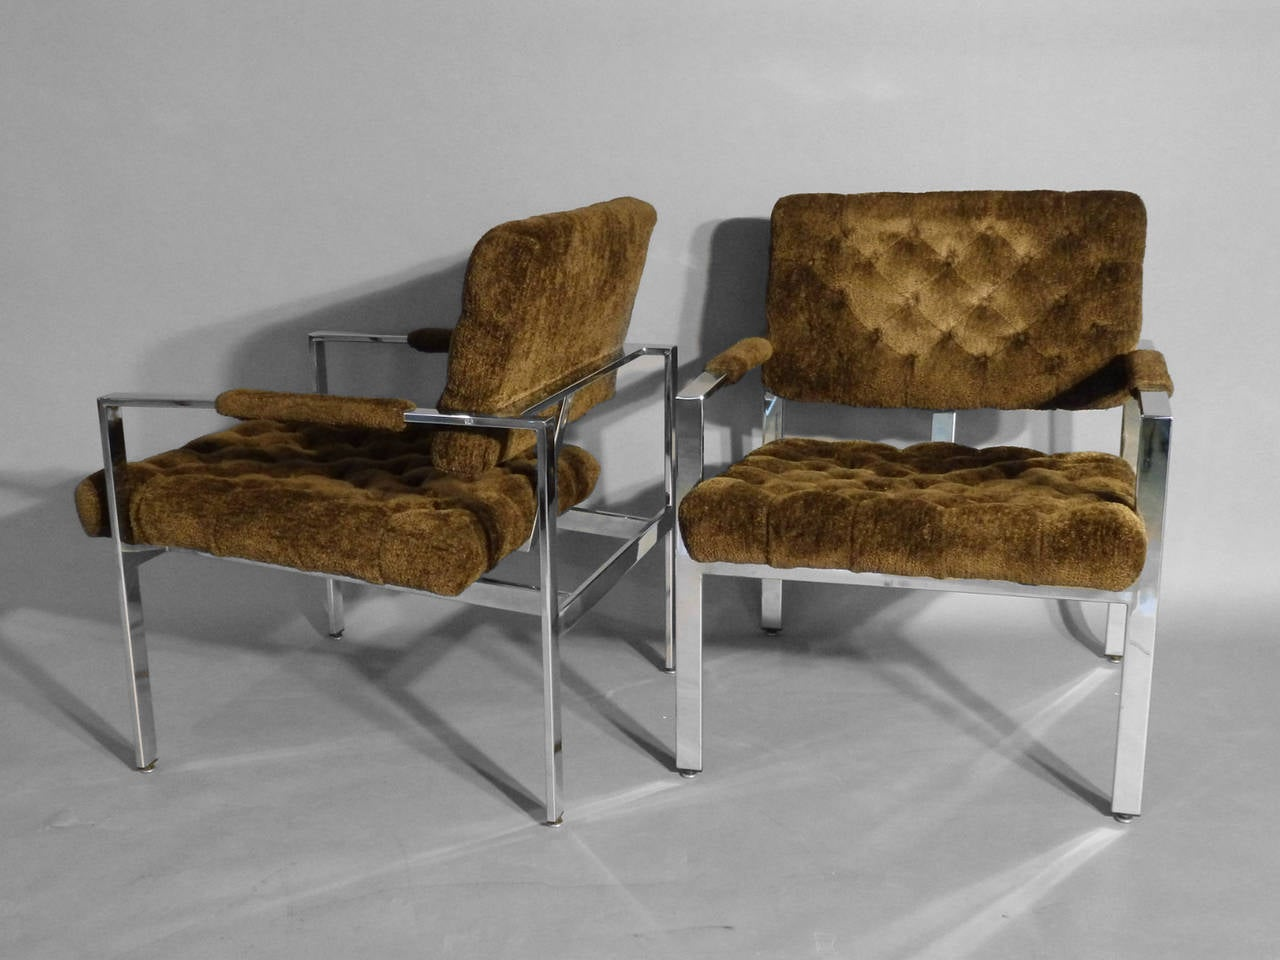 Pair of Milo Baughman Chrome Frame Chairs In Excellent Condition For Sale In Ferndale, MI